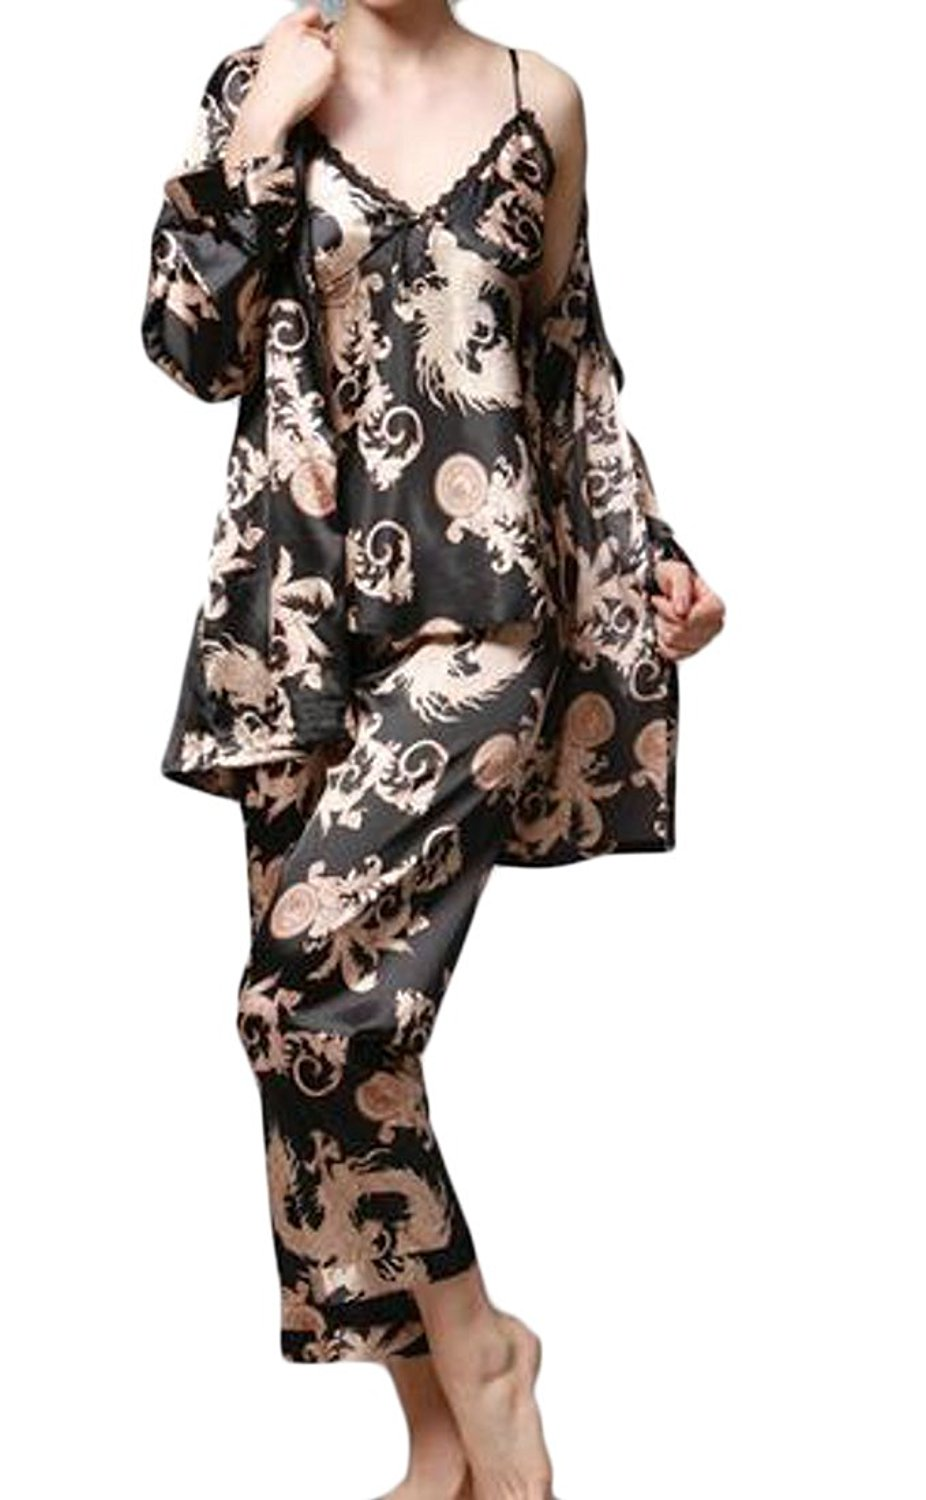 e75091ed09 Get Quotations · Jaycargogo Womens Pajamas 3PCs Suit Silk Satin Dragon  Print Pajamas Set Sleepwear